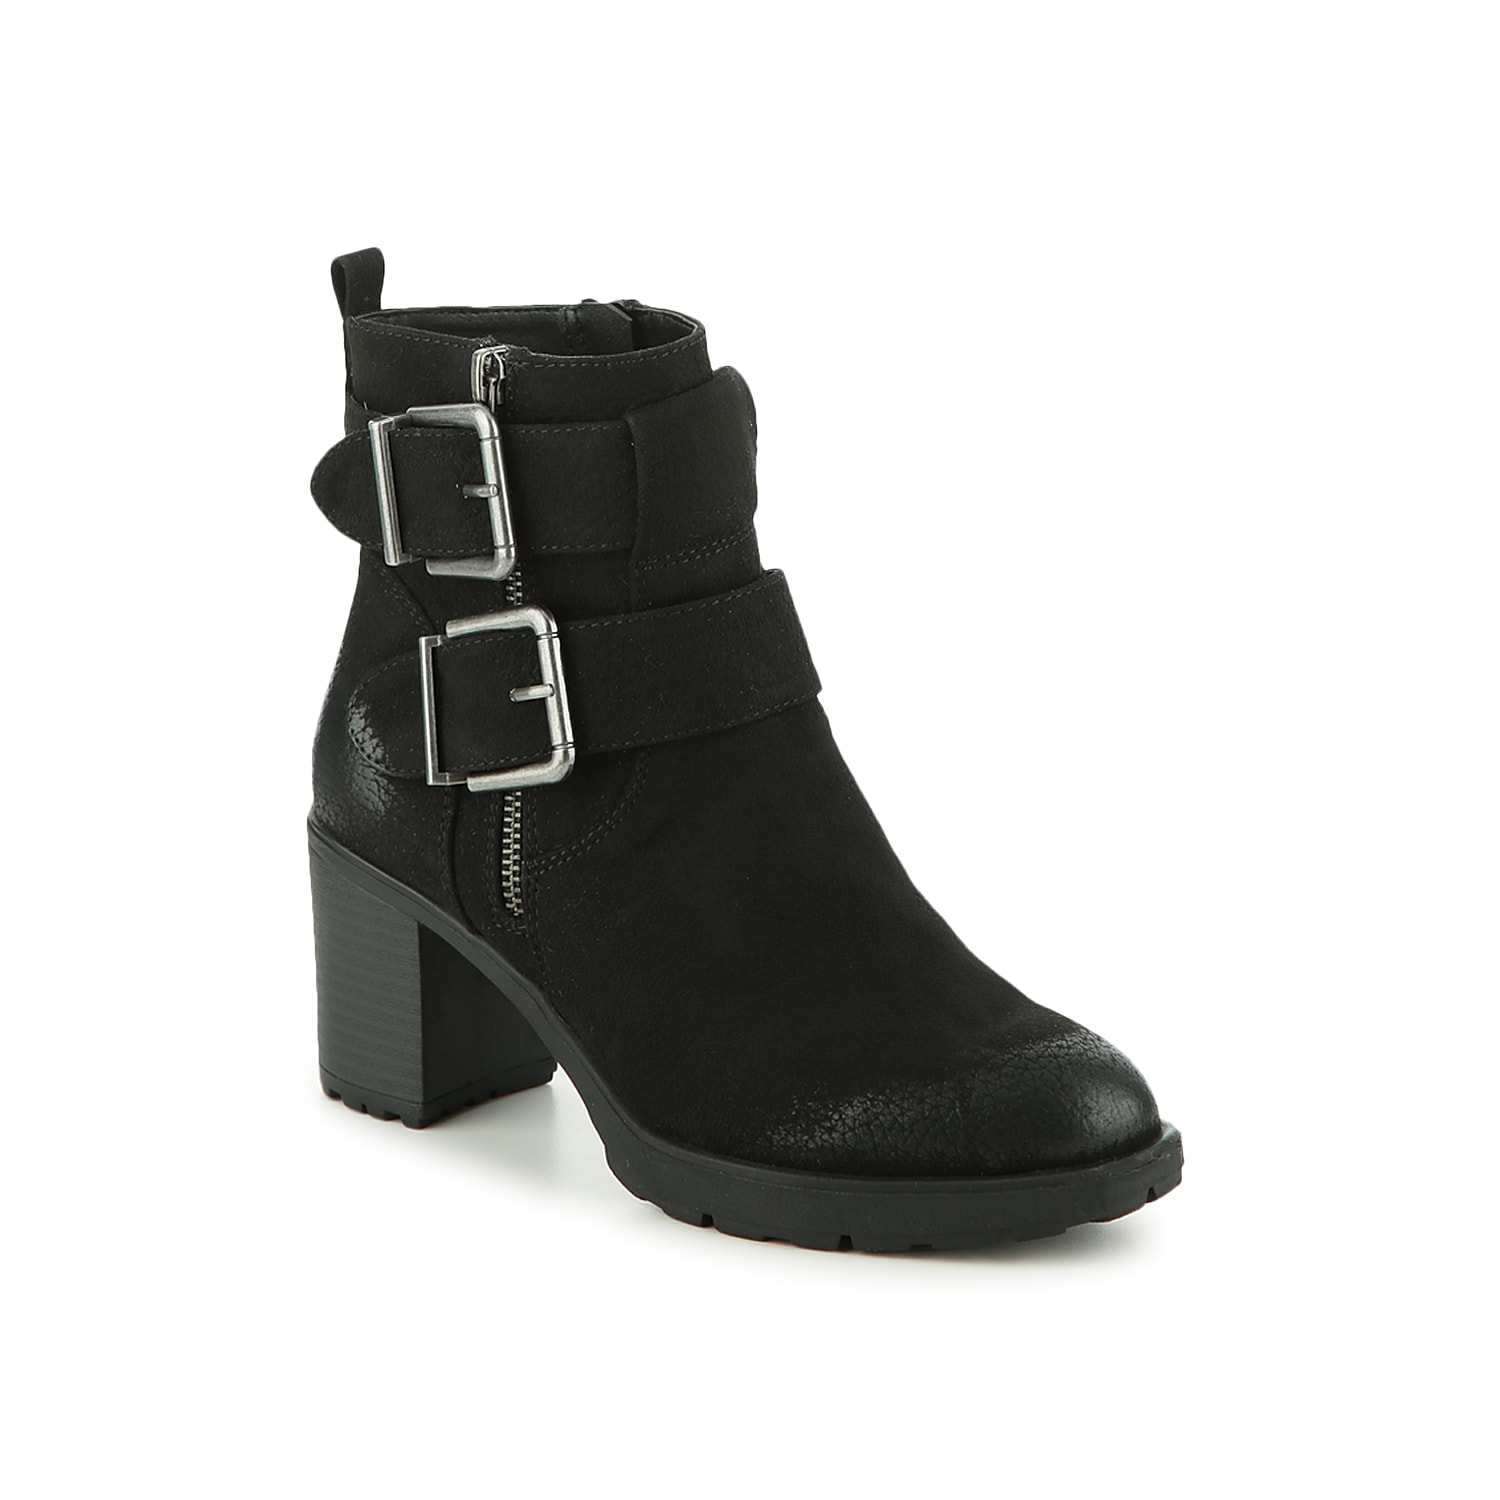 Showcase your edgy attitude with the Gilmour booties from White Moutain. These ankle boots feature bold side buckles and a chunky block heel to bring height to distressed jeans or a sweater dress. Click here for Boot Measuring Guide.